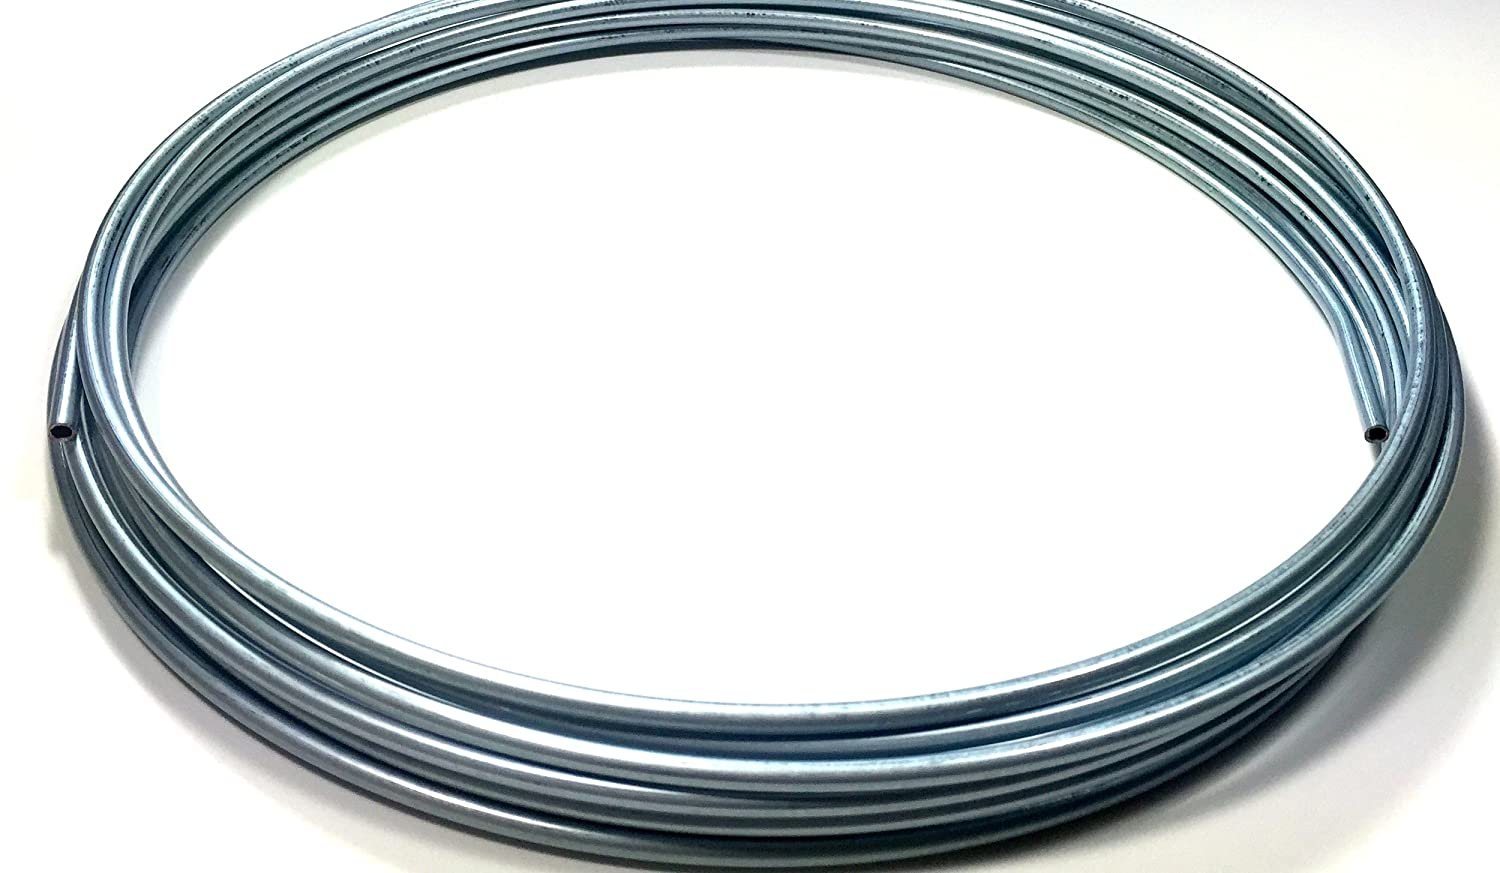 Roll of 25 ft. Zinc Plated 1/4' Brake or Fuel Line Tubing Coil The Stop Shop